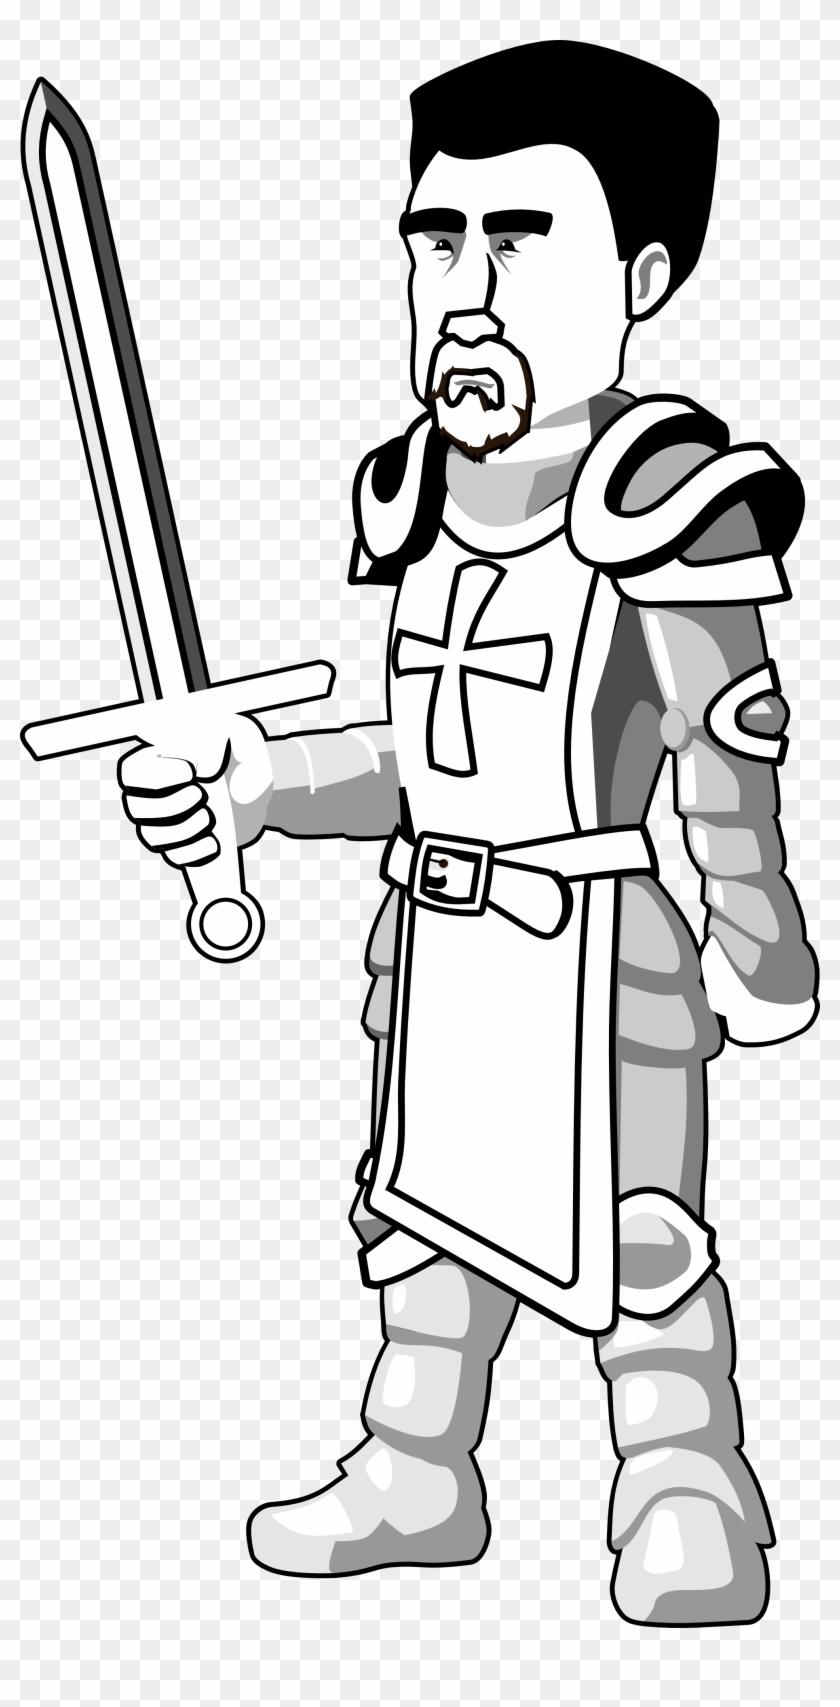 Knights clipart medieval history. Knight in black and